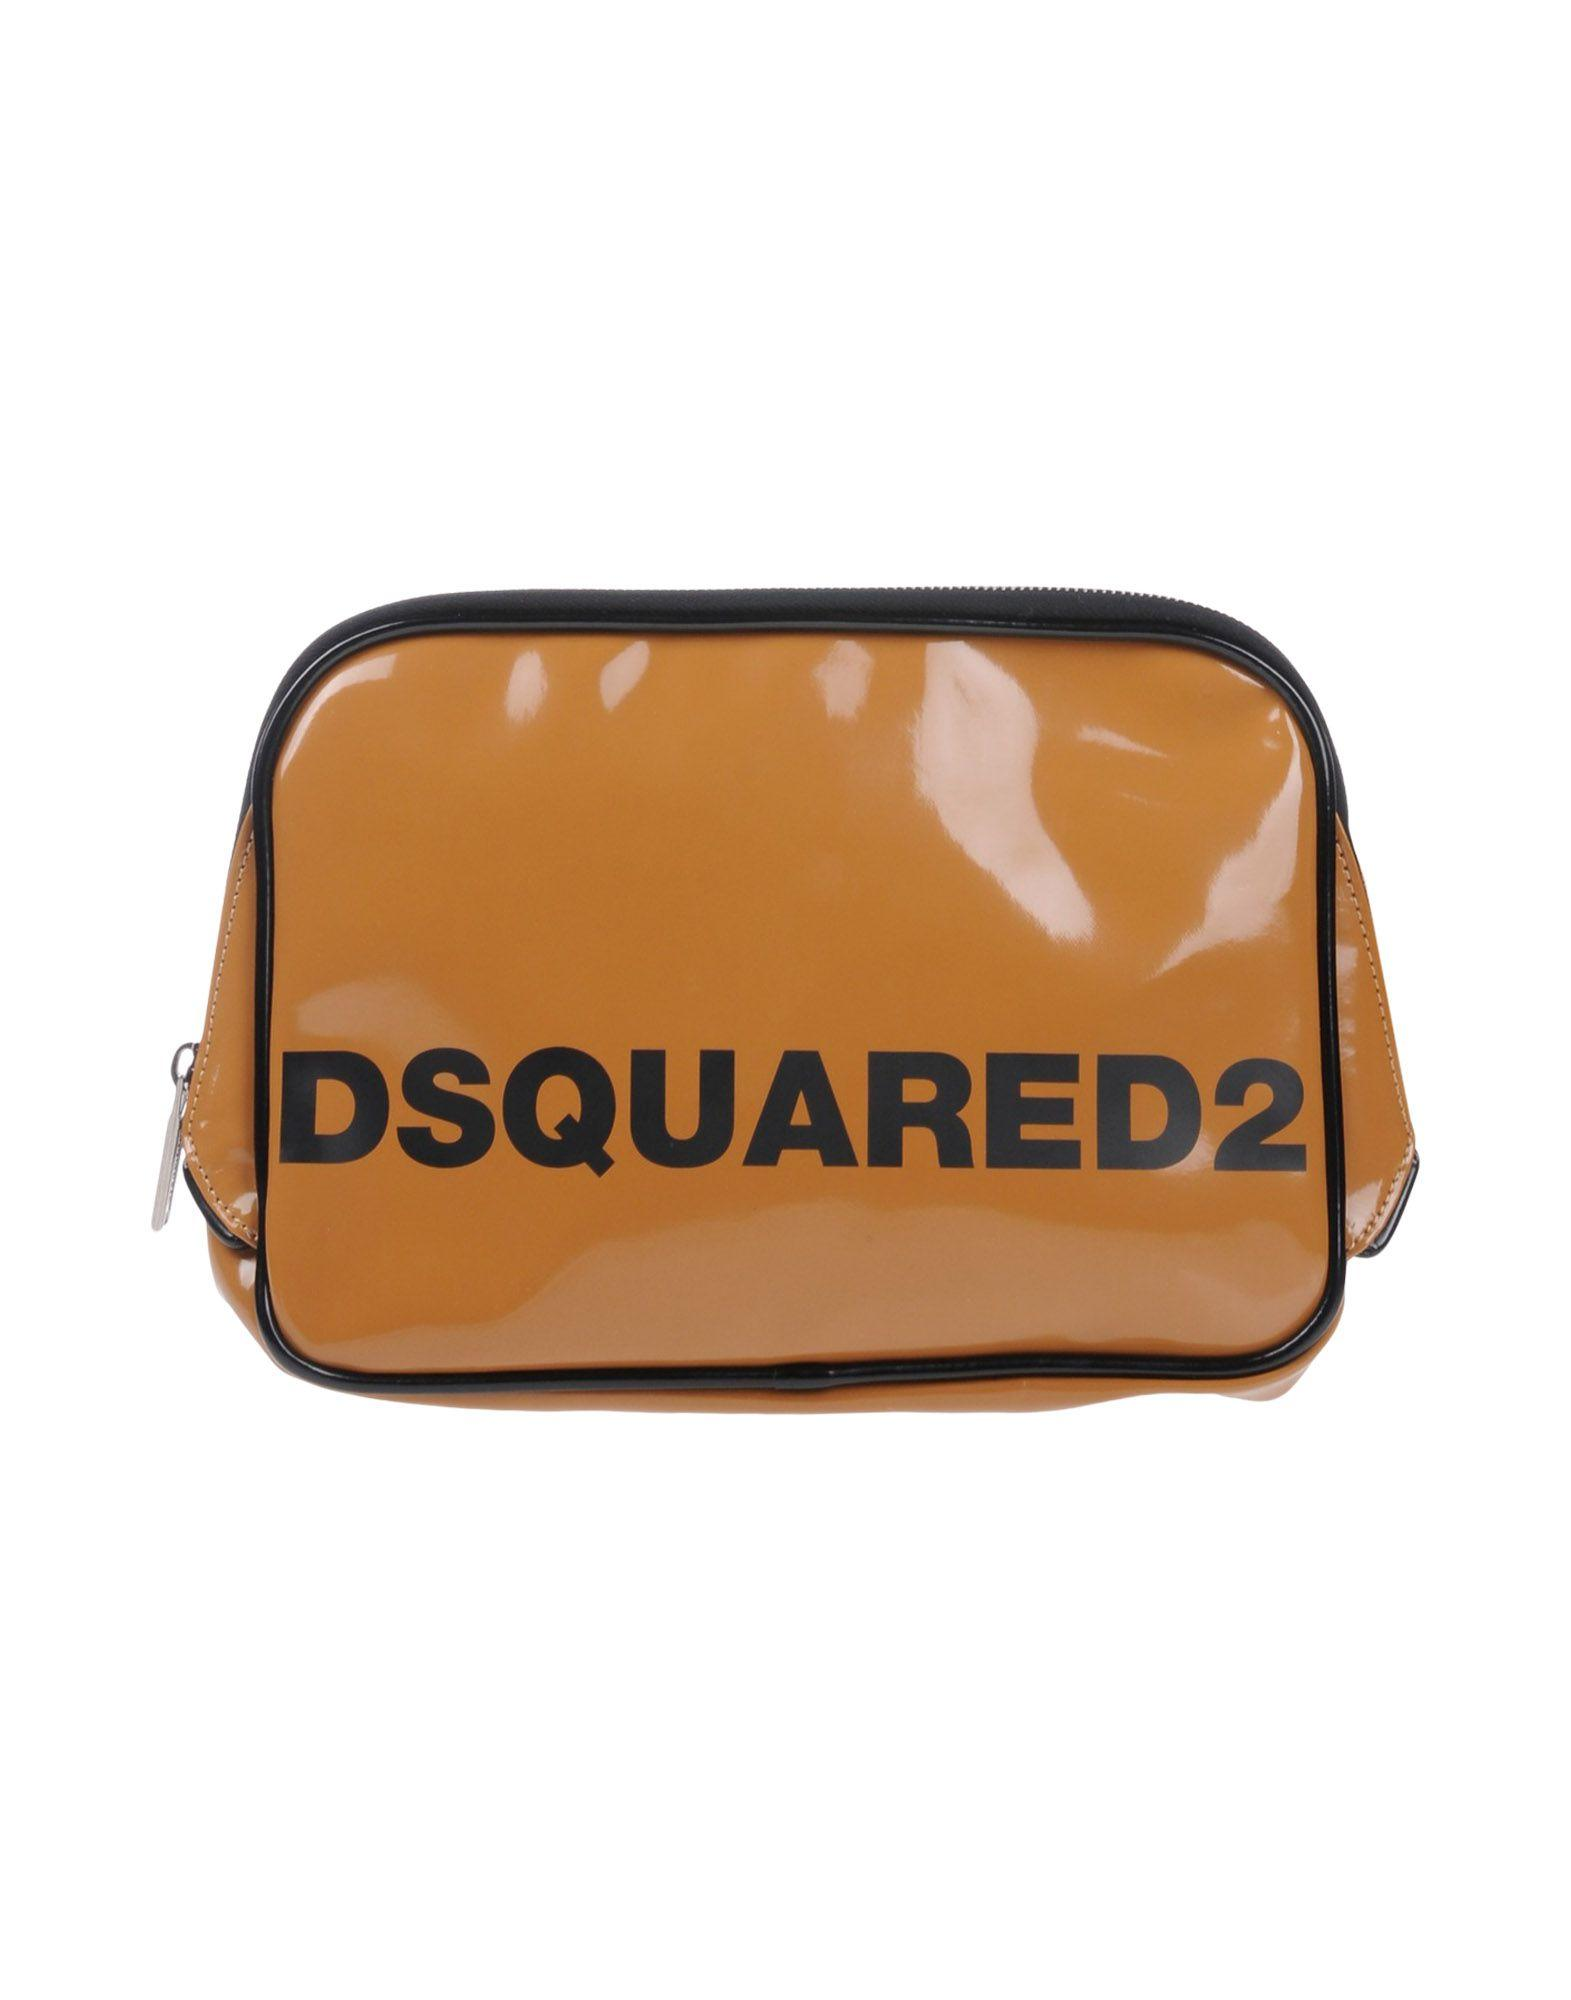 Dsquared2 Handbags In Camel